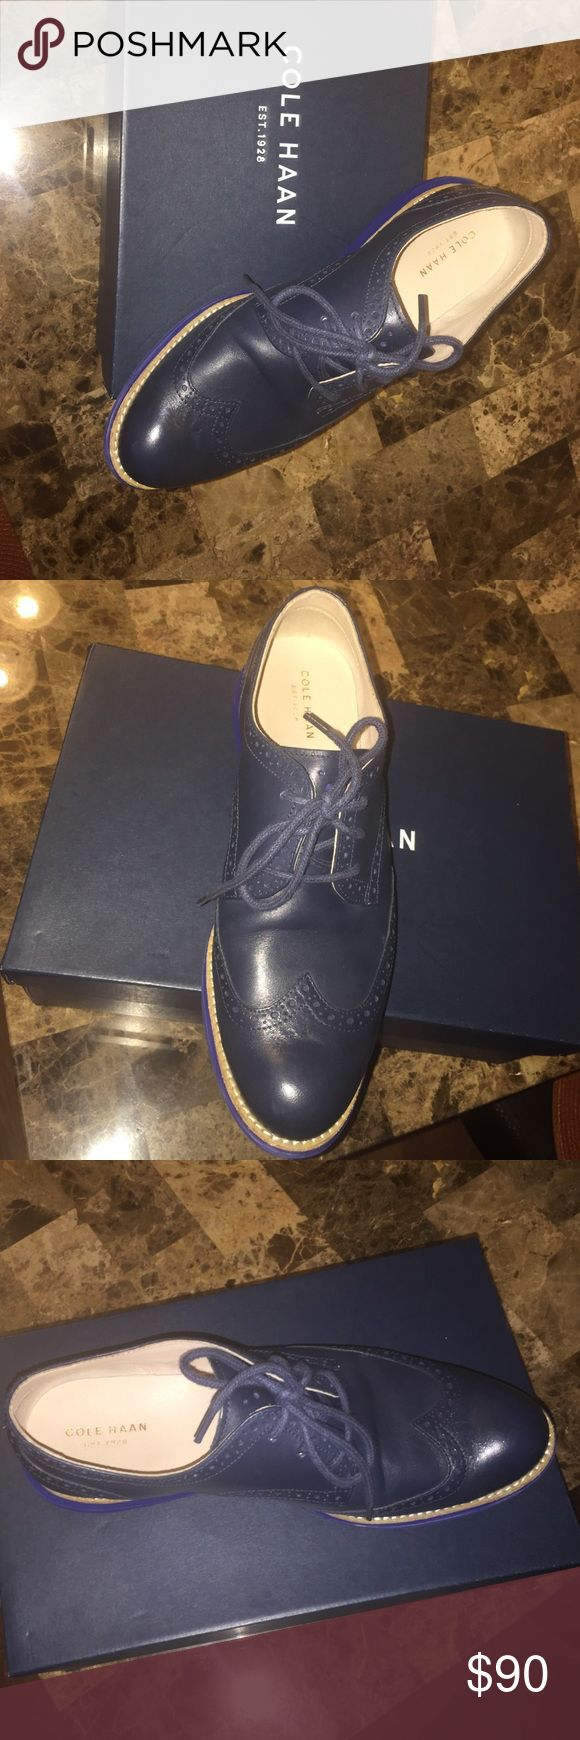 Women's Cole Haan Oxfords only worn twice Navy Blue Wingtip Oxfords for Women Cole Haan Shoes Flats & Loafers